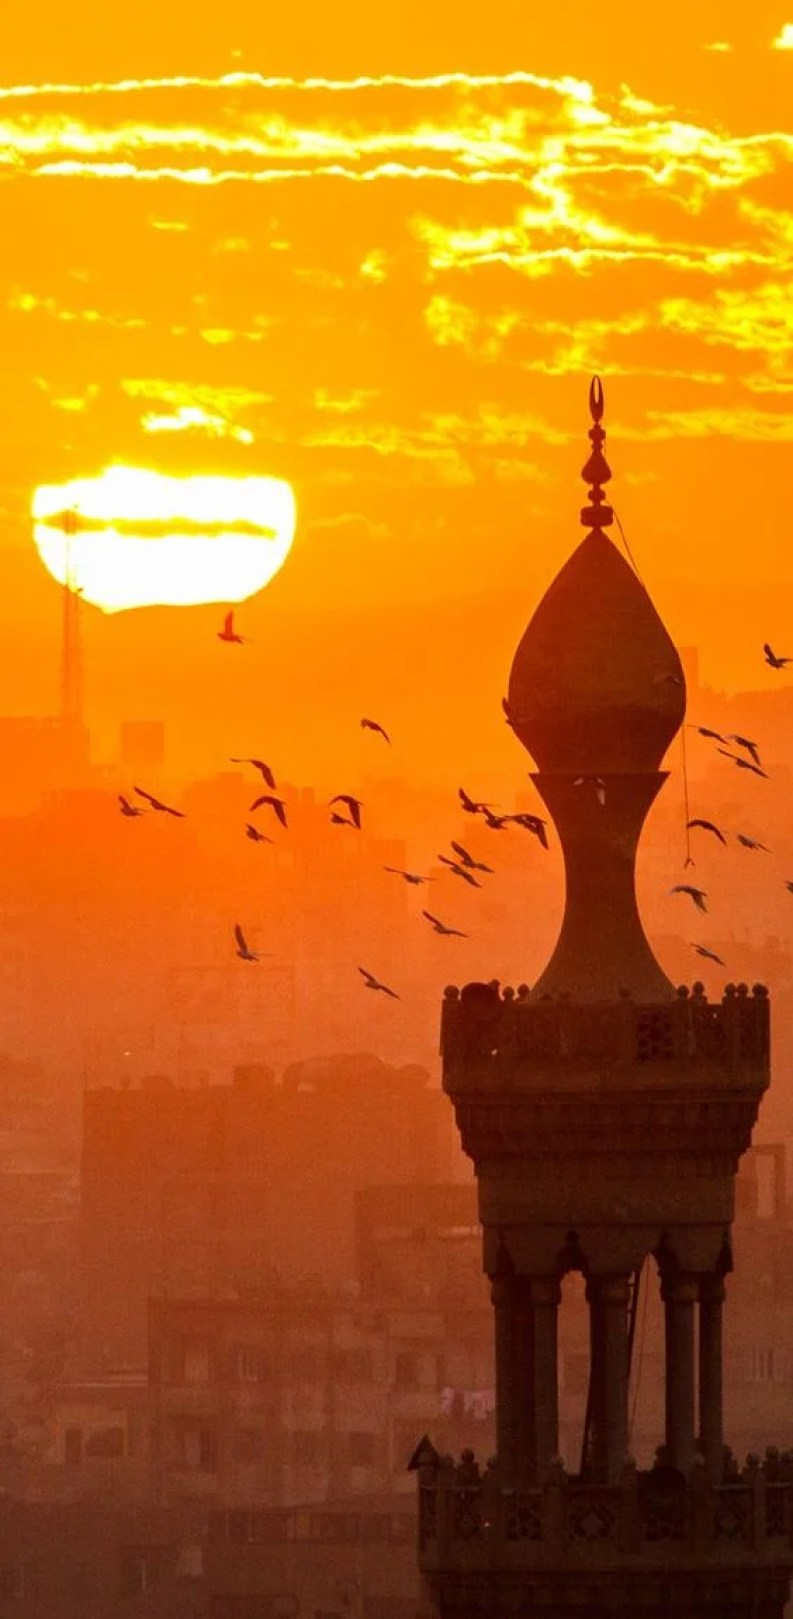 Cairo Egypt Sunset